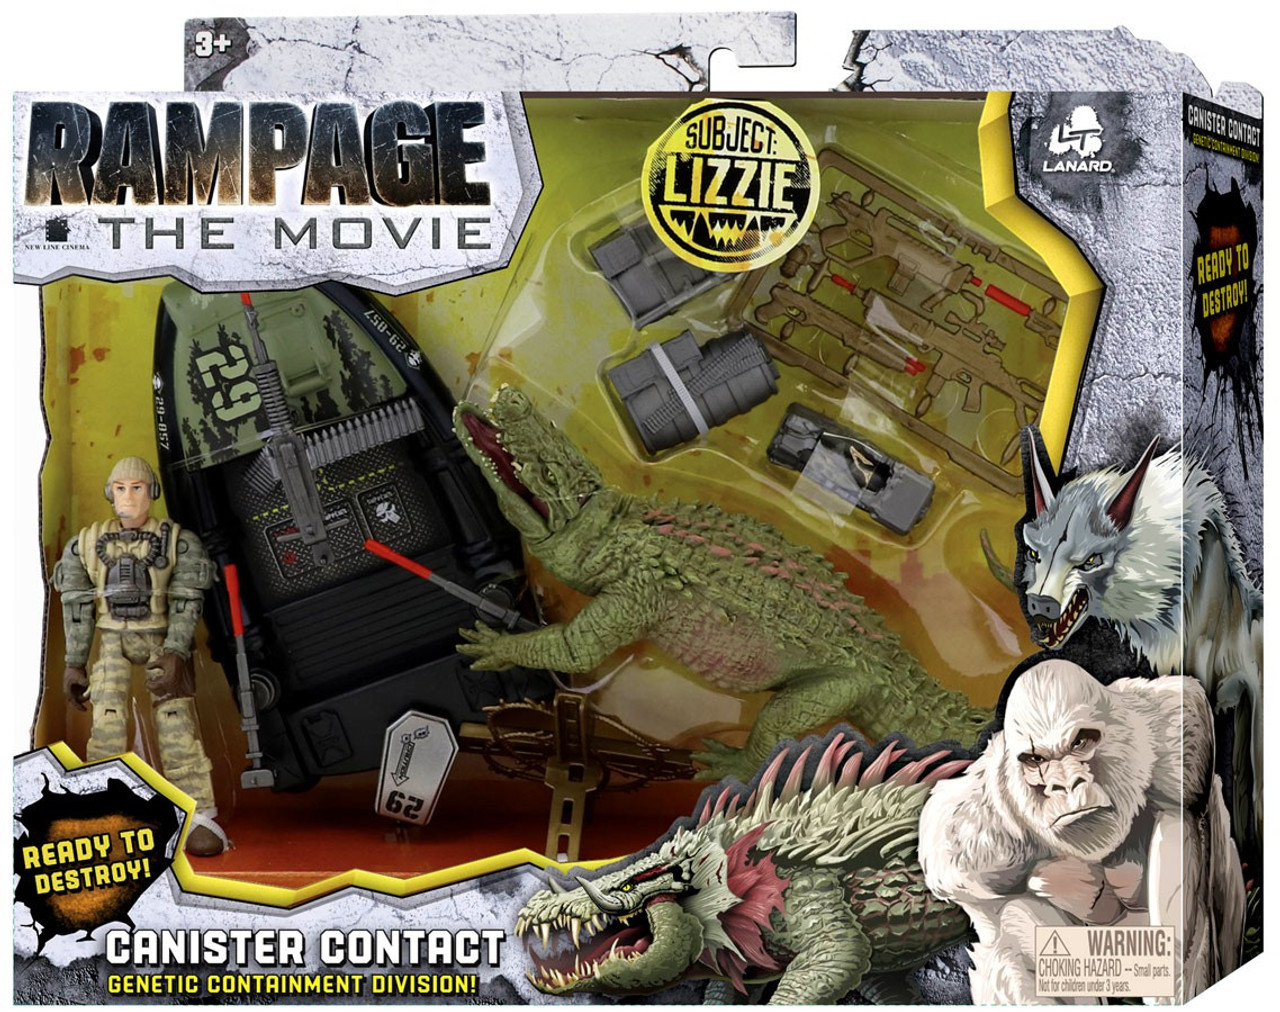 rampage george lizzie ralph movie